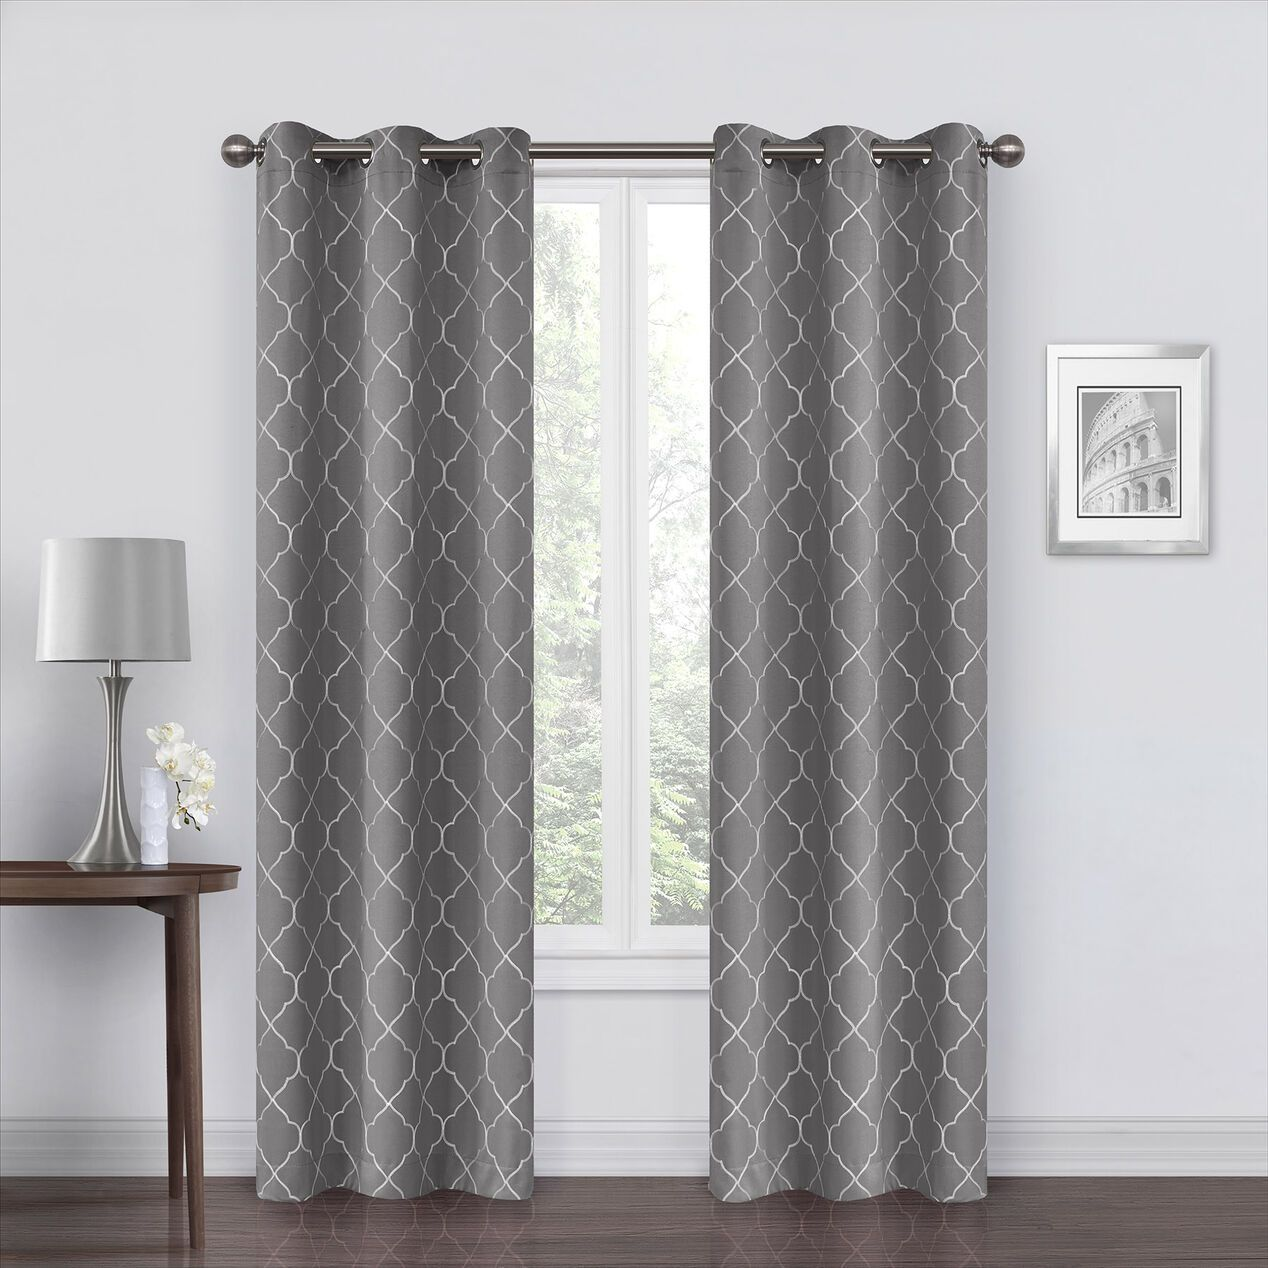 Gray Curtains Grommet Curtains Panel Curtains Curtains